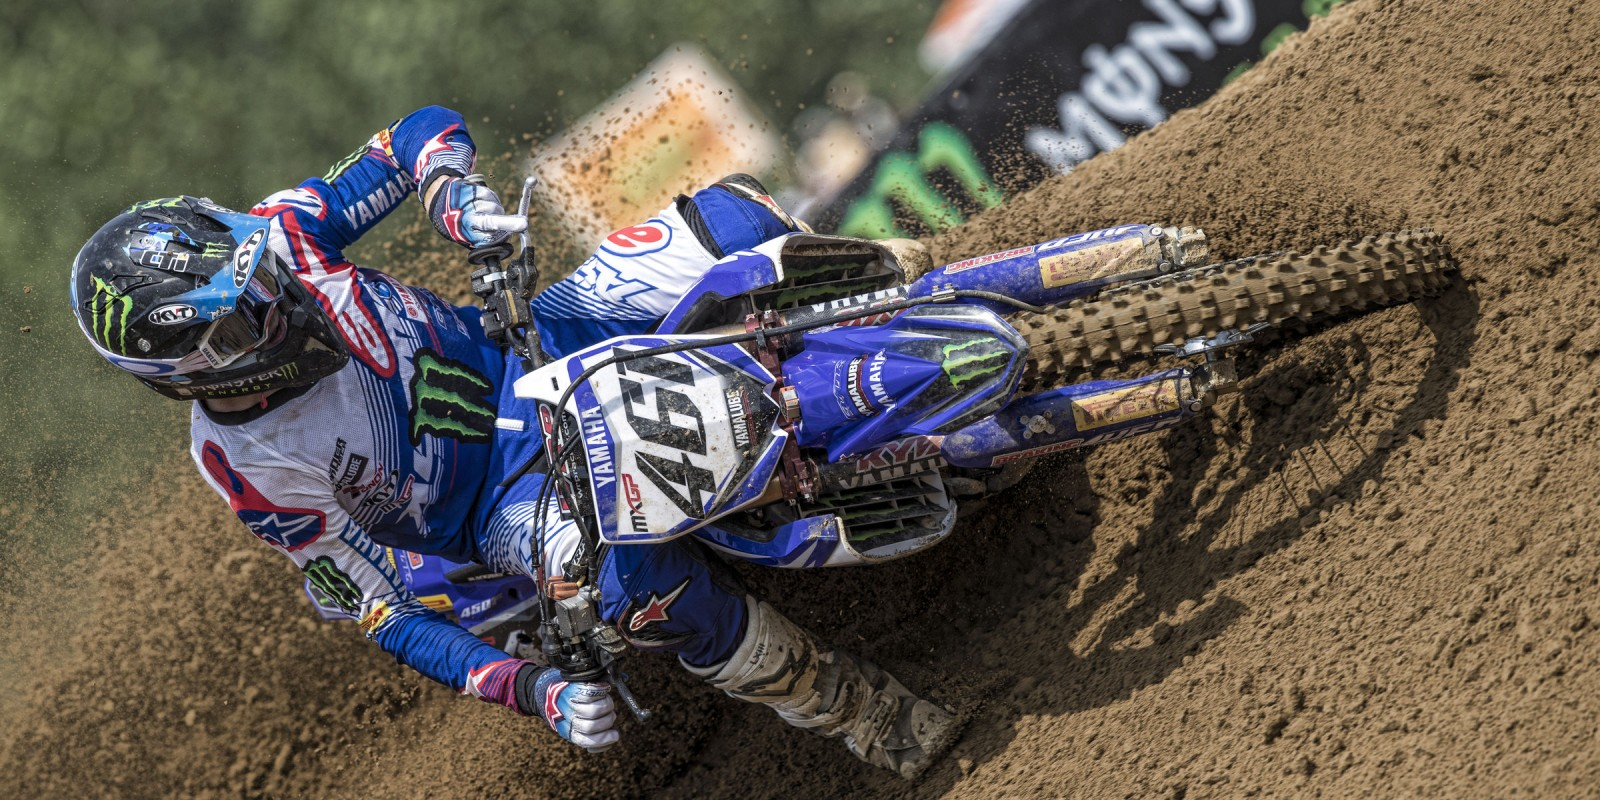 Romain Febvre at the 2017 Grand Prix of Lombardia